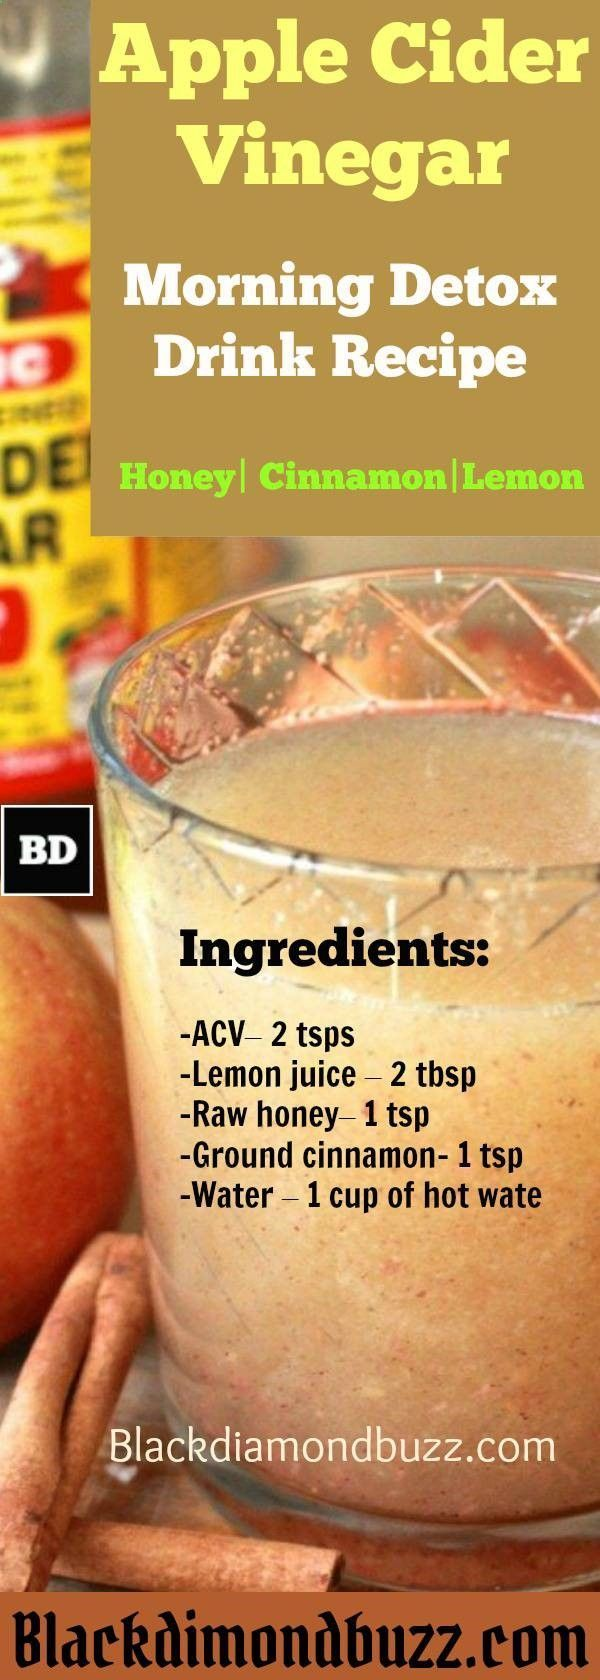 DIY Apple Cider Vinegar Detox Drink Recipe ( Honey, Cinnamon, and Lemon) for Fat Burning – Drink this Early in the Morning and Before Going to Bed at Night. Do you really want to detox your body from toxic substances and lose some fat? If so then this apple cider vinegar detox drink is for you. Apple cider vinegar (ACV) is well known for its antioxidant and revitalizing properties. It is good for weight loss, lowers blood sugar and improves symptoms of diabetes.